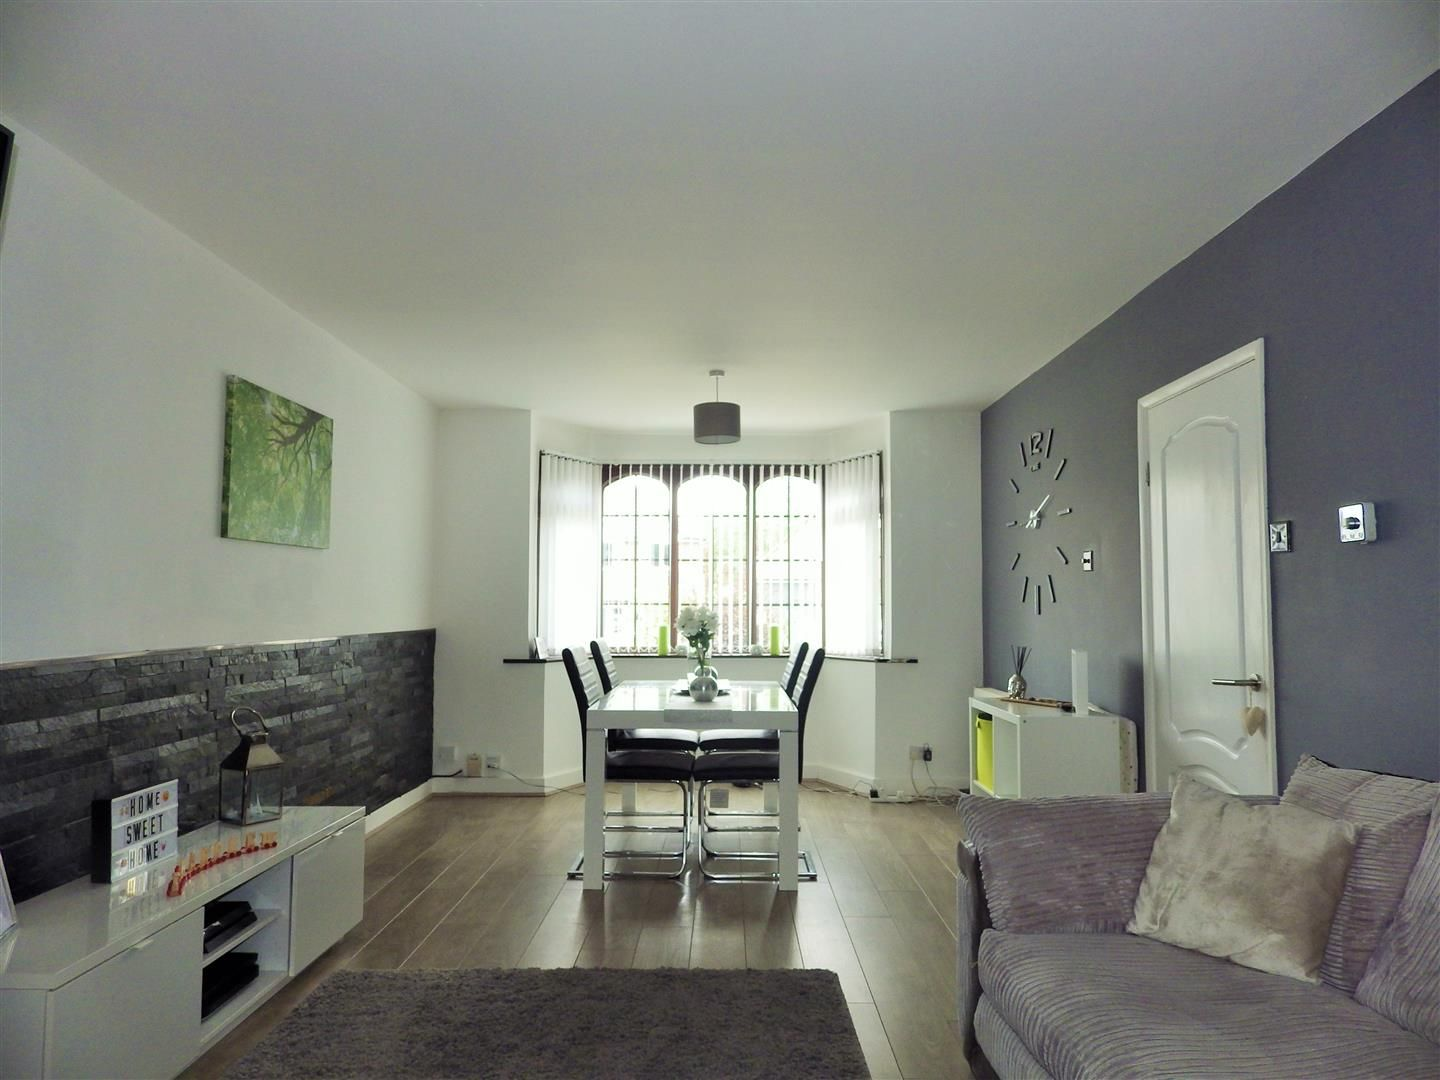 3 bed semi-detached for sale in Hasbury  - Property Image 2